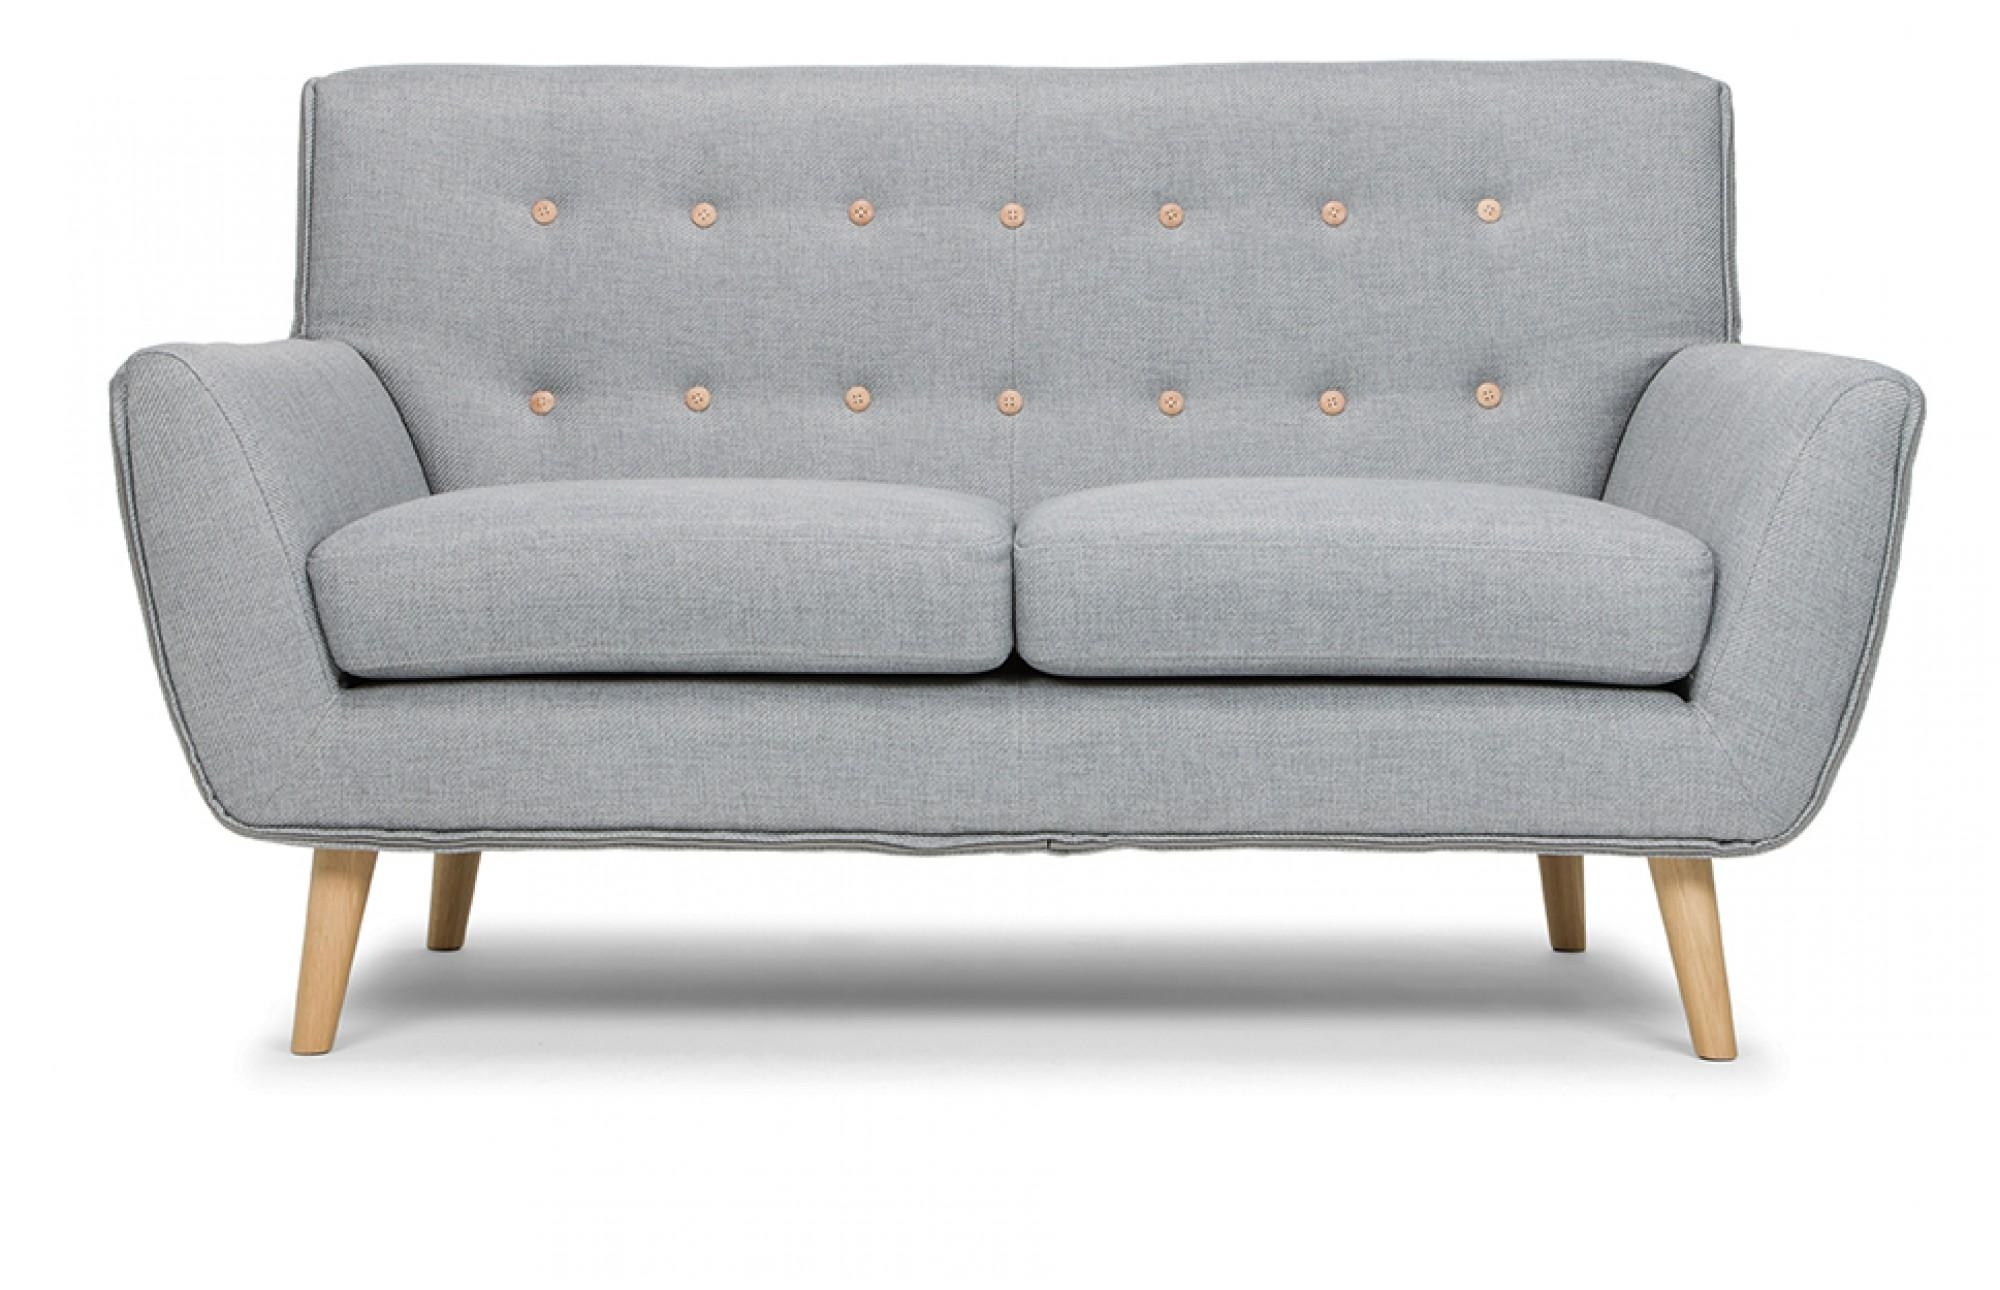 Richard 2 Seater Sofa In Stone Grey – Out And Out Original Regarding Two Seater Sofas (View 5 of 20)